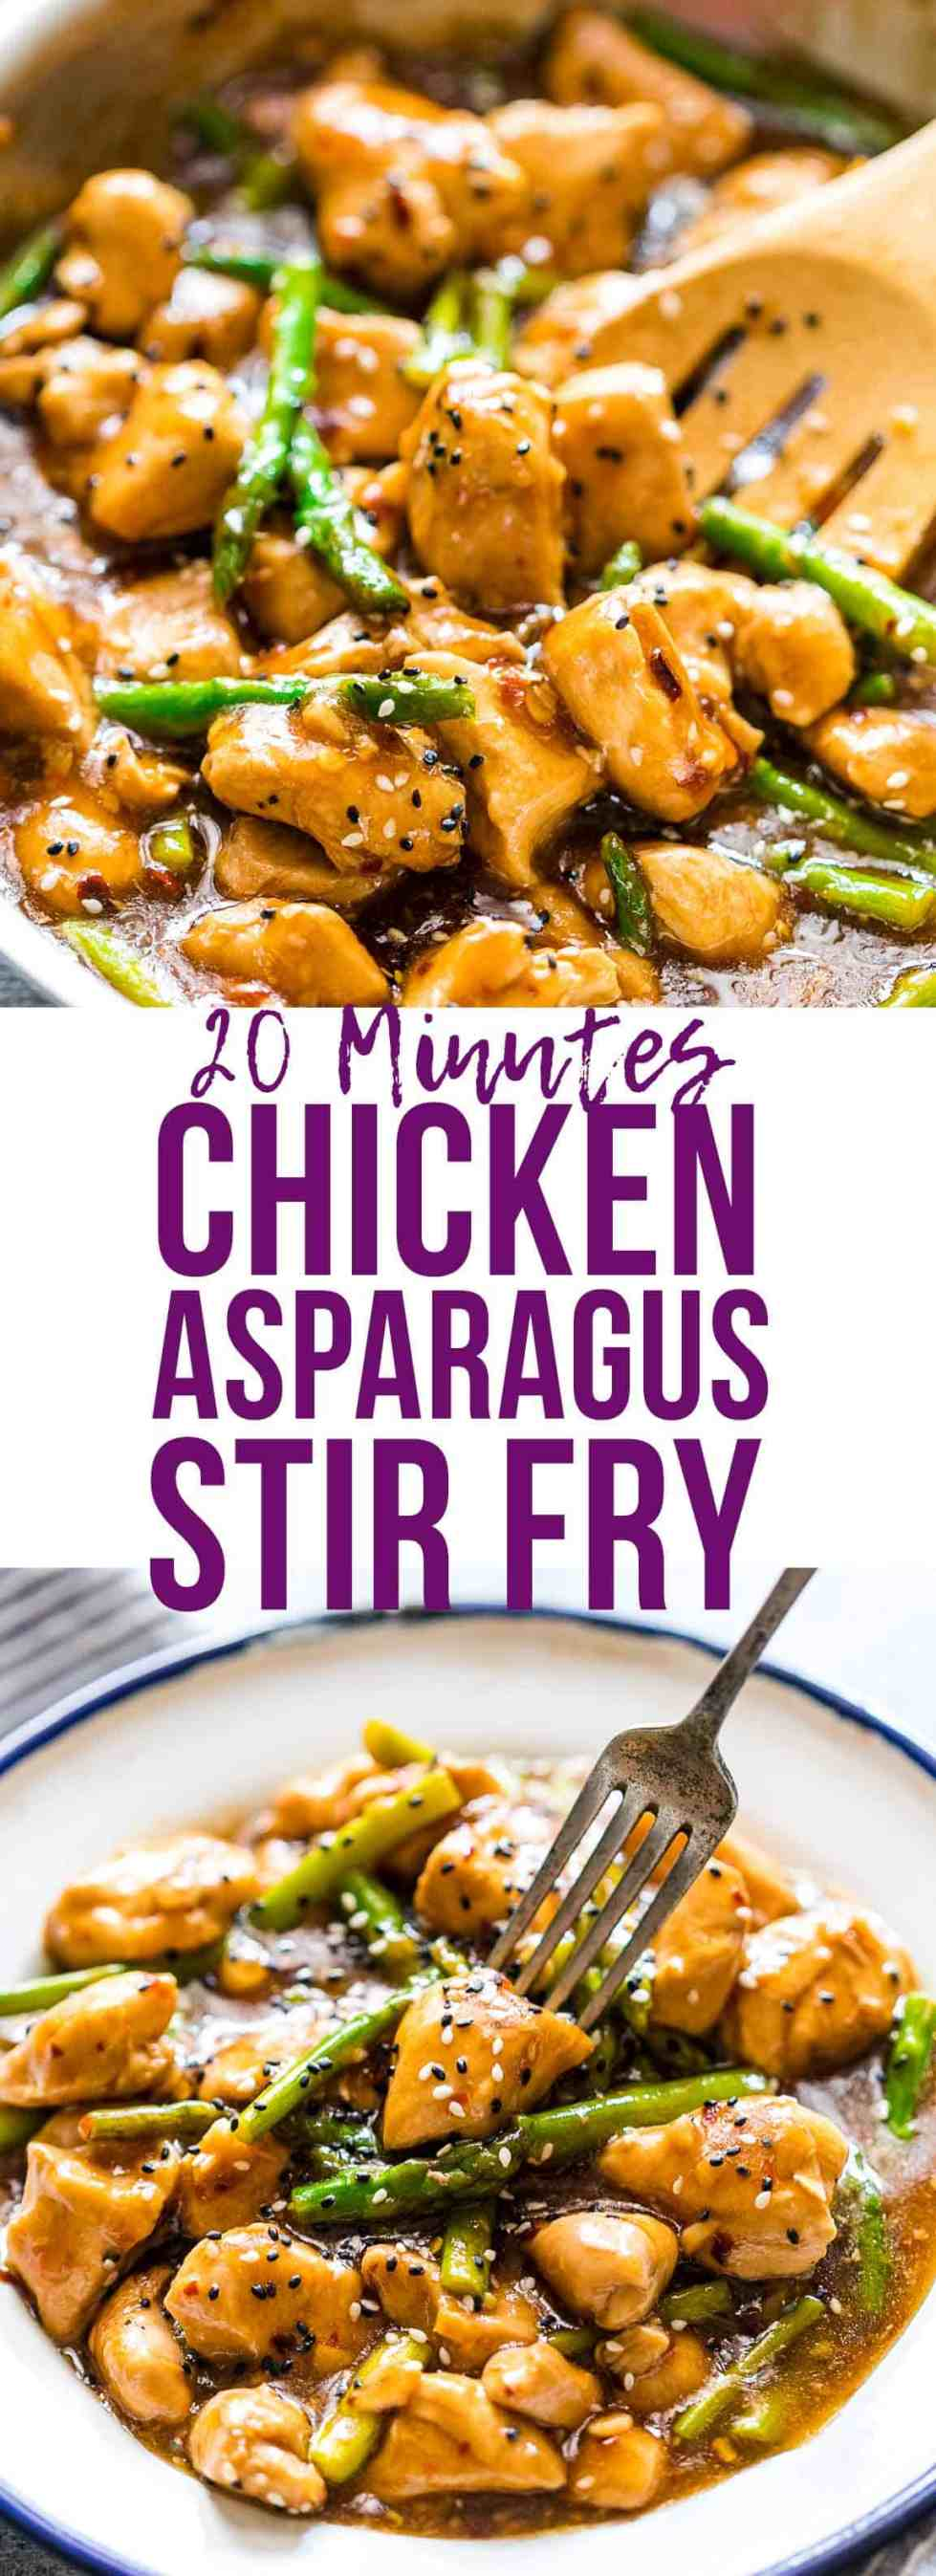 Easy lemon ginger chicken asparagus stir fry is a quick, 30 minute asian recipe that's sure to be a hit with the family. It's low carb and can gluten free too so you can enjoy it guilt-free! Add your favourite veggies to make it super healthy